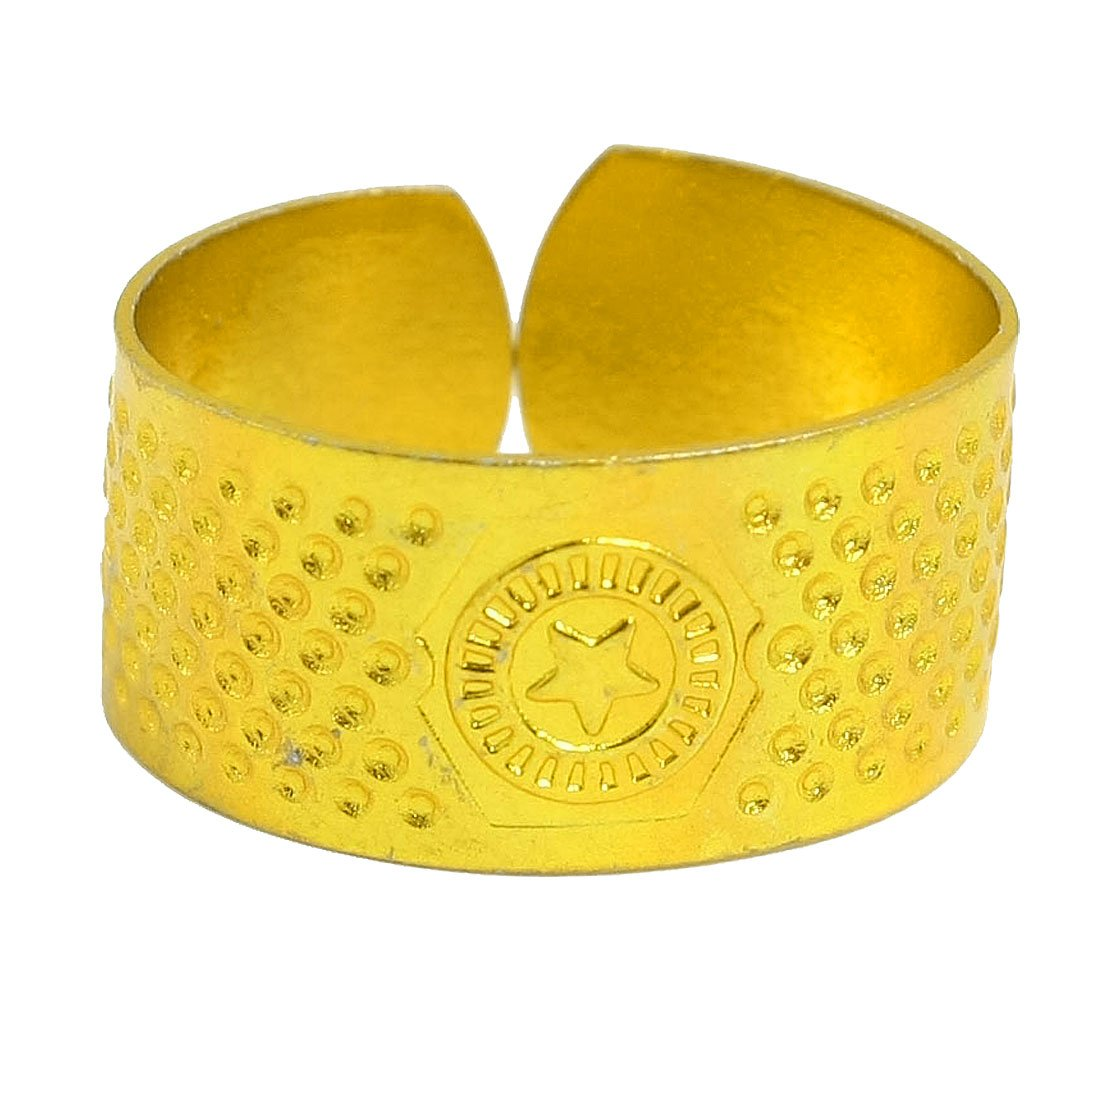 uxcell Star Pattern Metal Sewing Reeded Texturing Thimble Ring Gold Tone a12042600ux0257